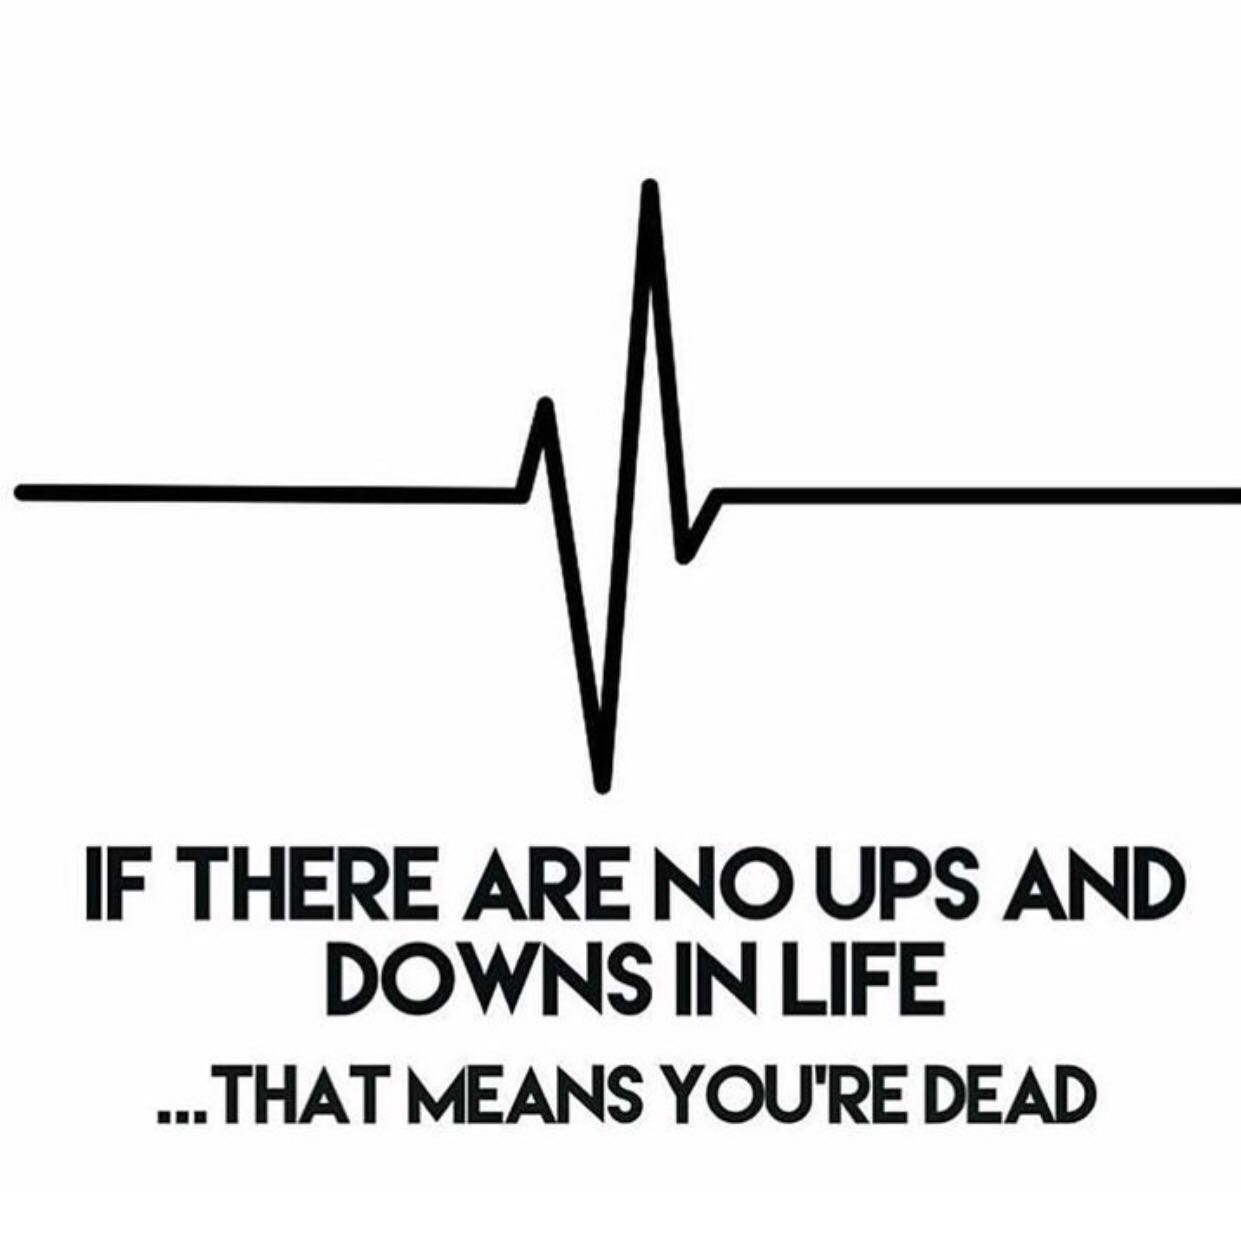 Kayala: No UPs and DOWNs in Your Life?